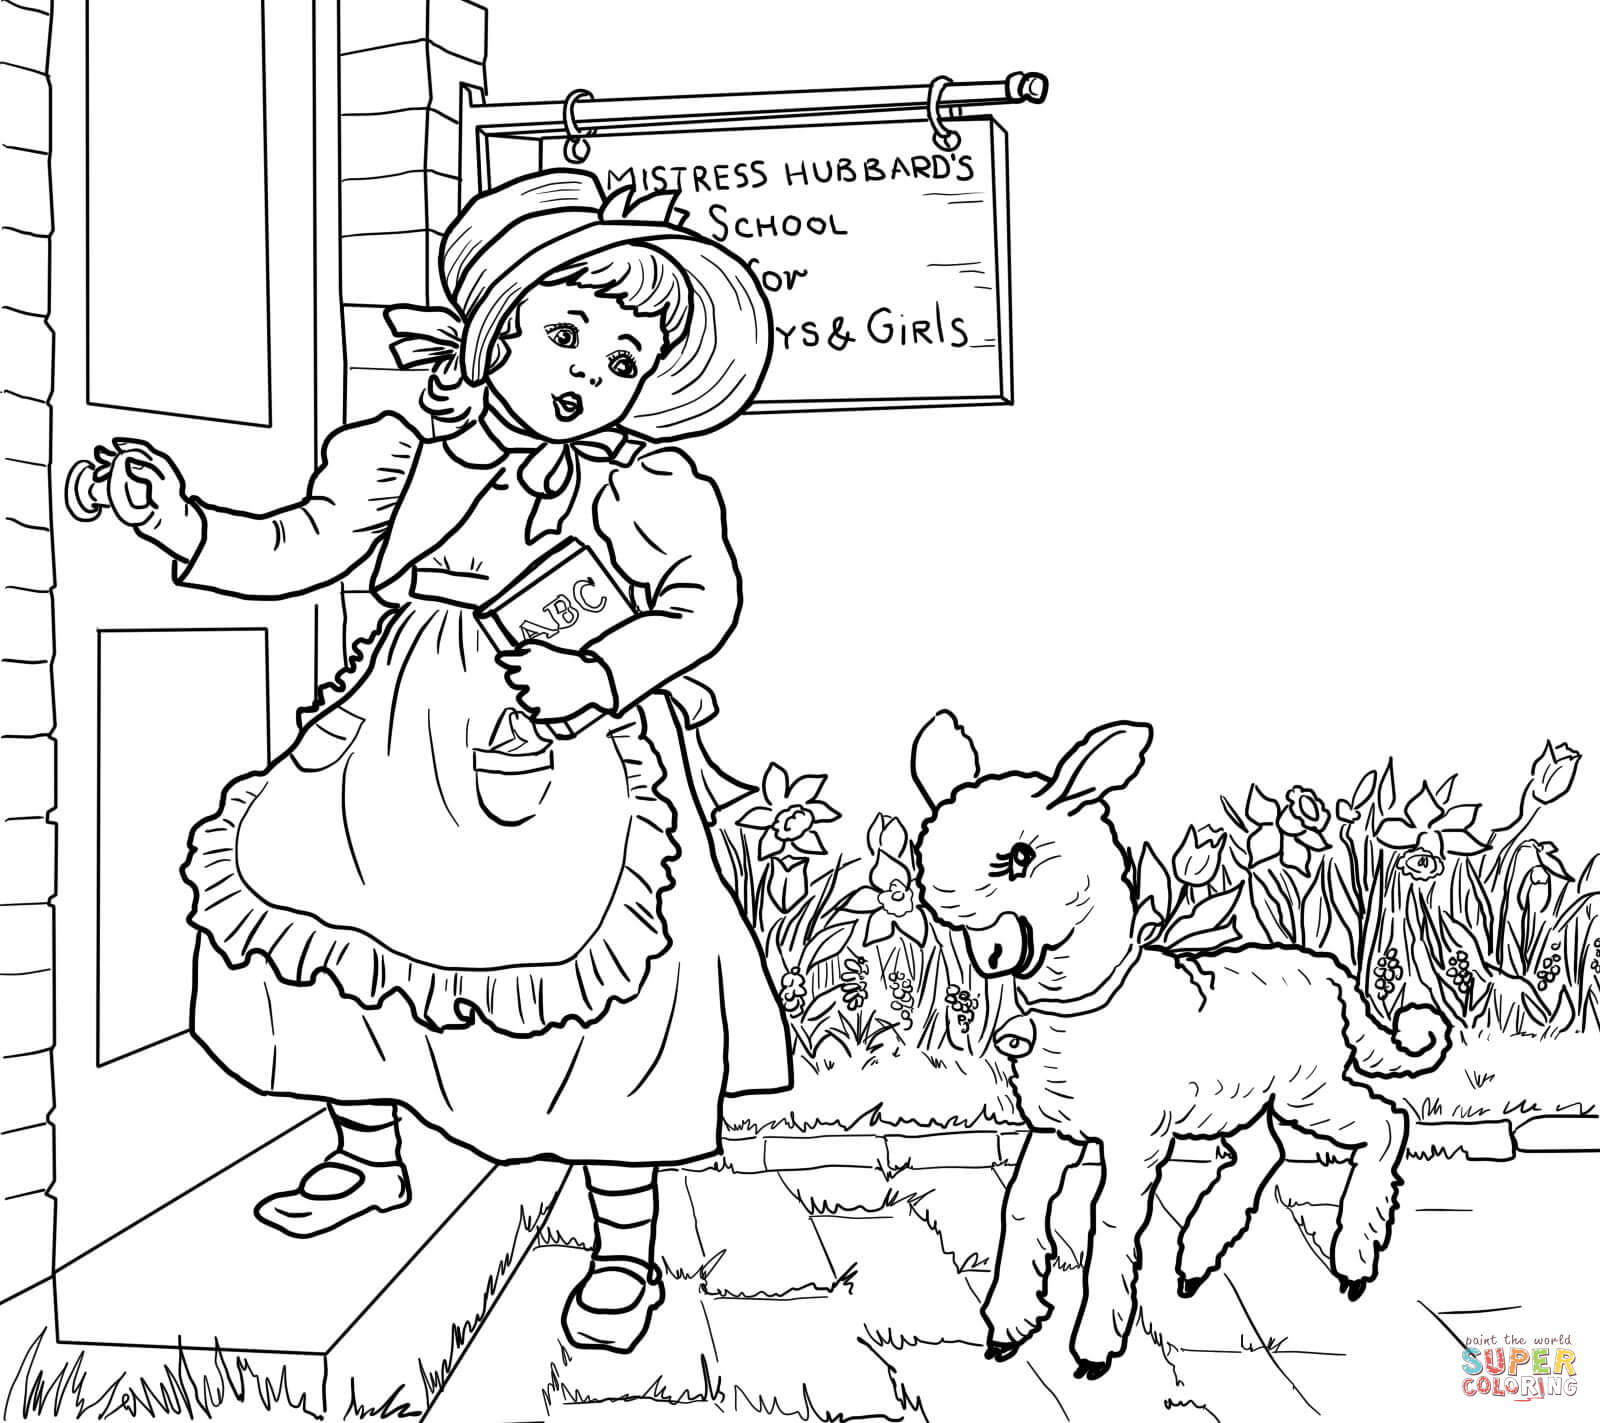 4 Images of Mary Had A Little Lamb Nursery Rhyme Printable